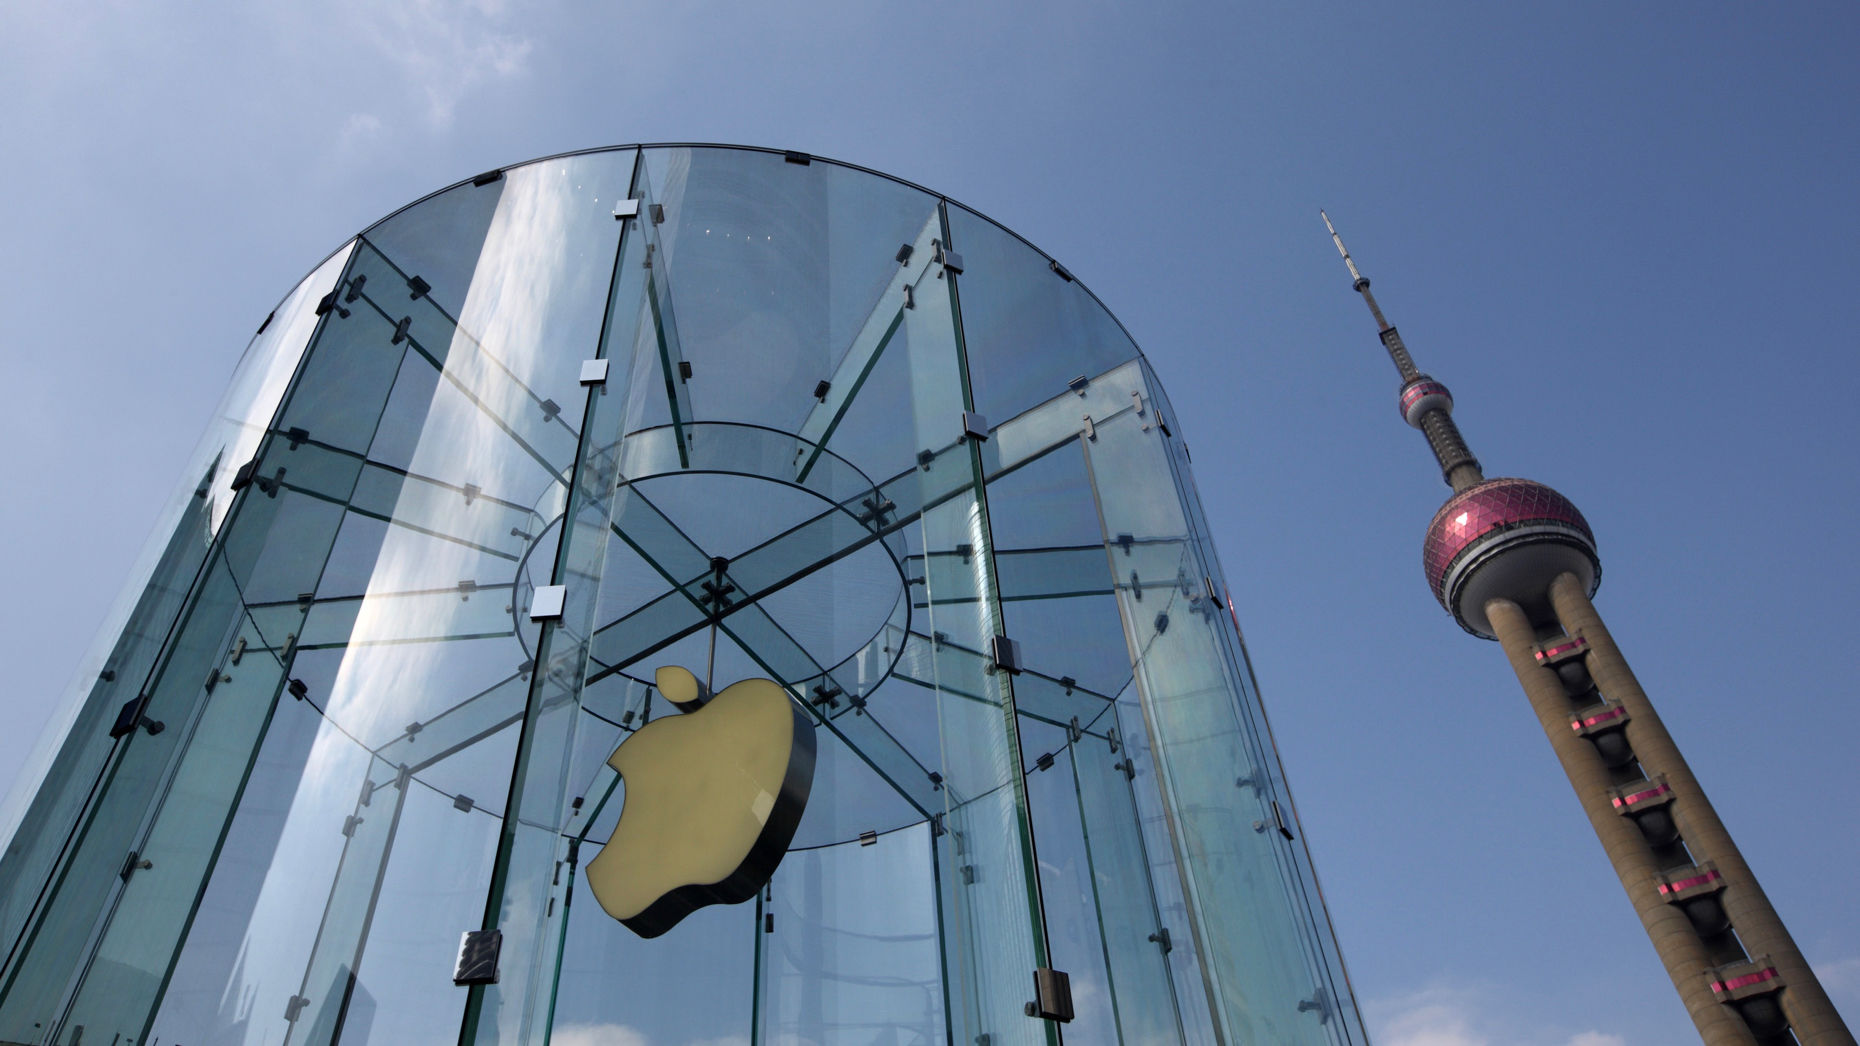 Apple's store in the Pudong district of Shanghai, China. Photo by Bloomberg